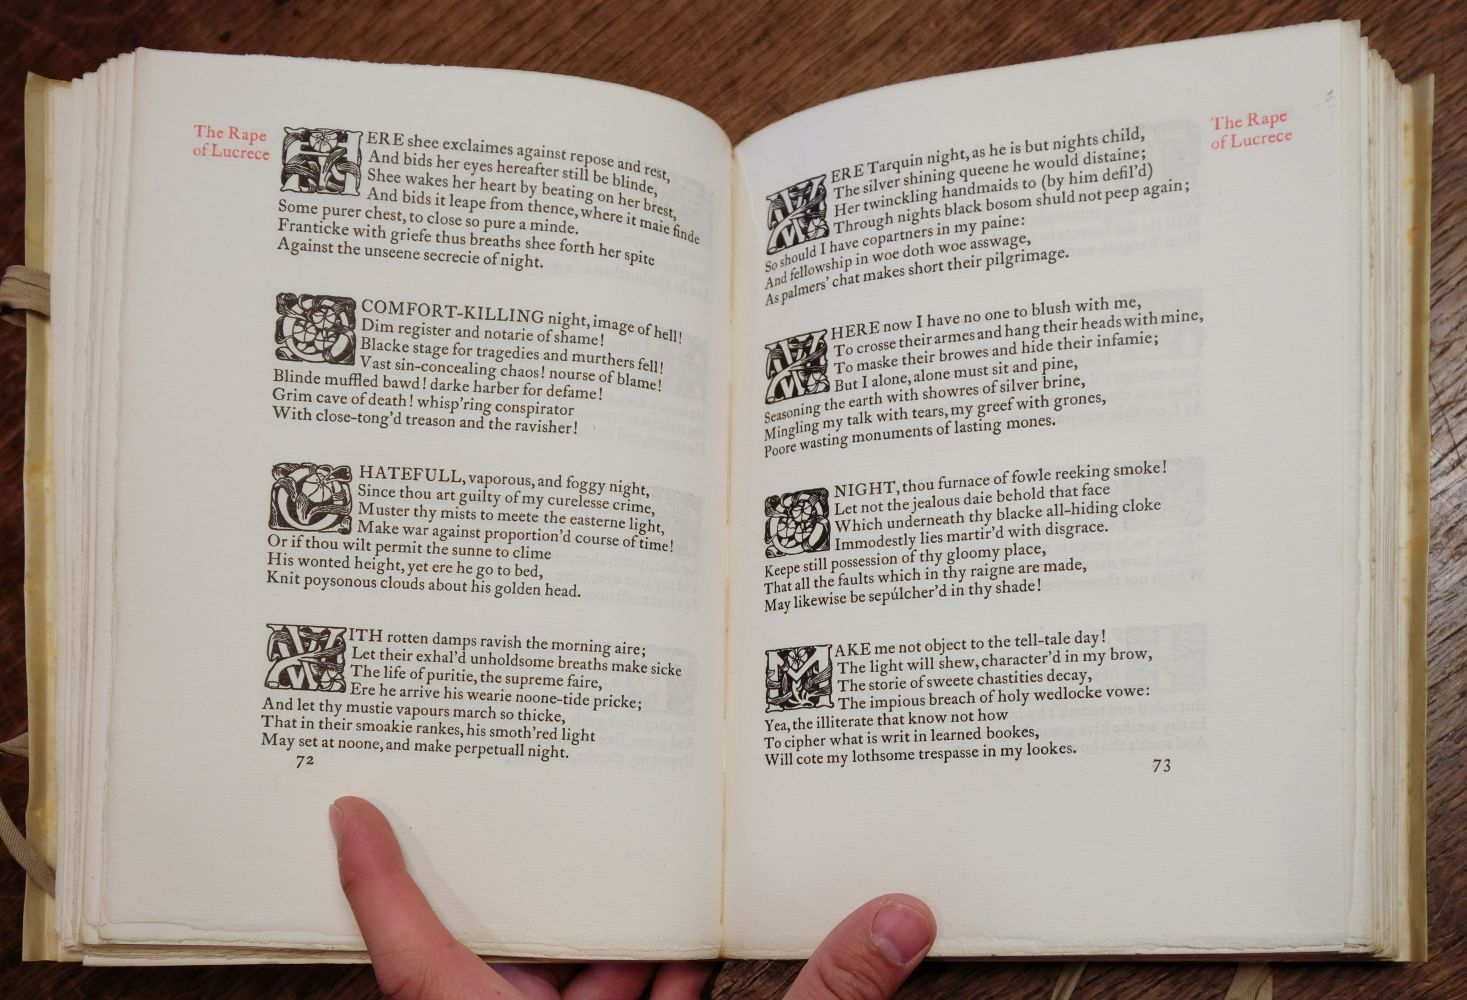 Essex House Press. The Poems of William Shakespeare, 1899 - Image 6 of 7